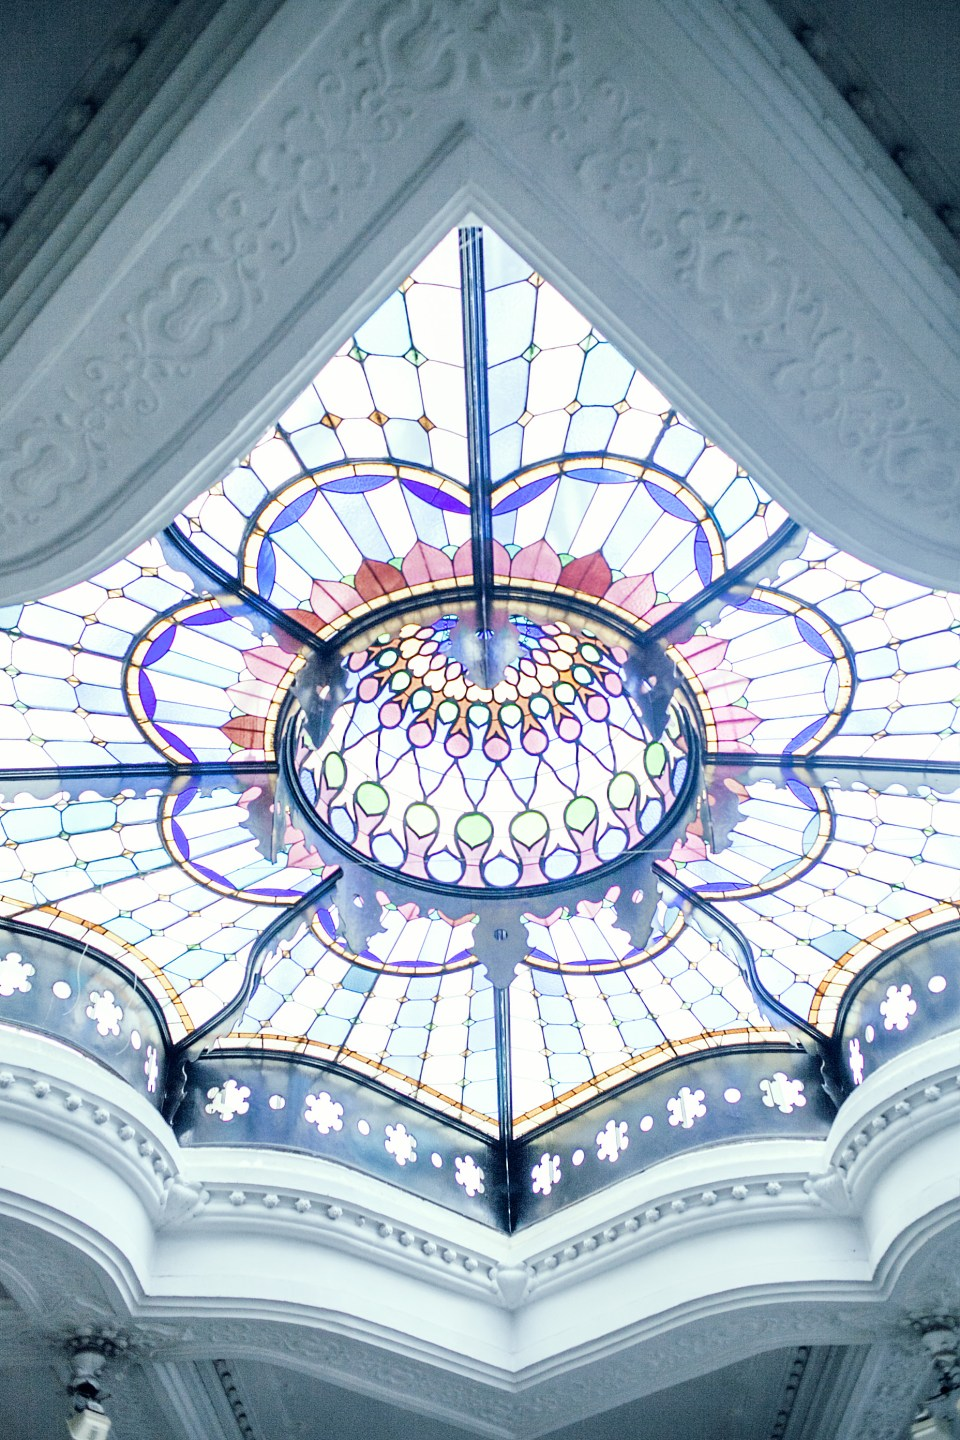 Old classic ceiling with stained glass